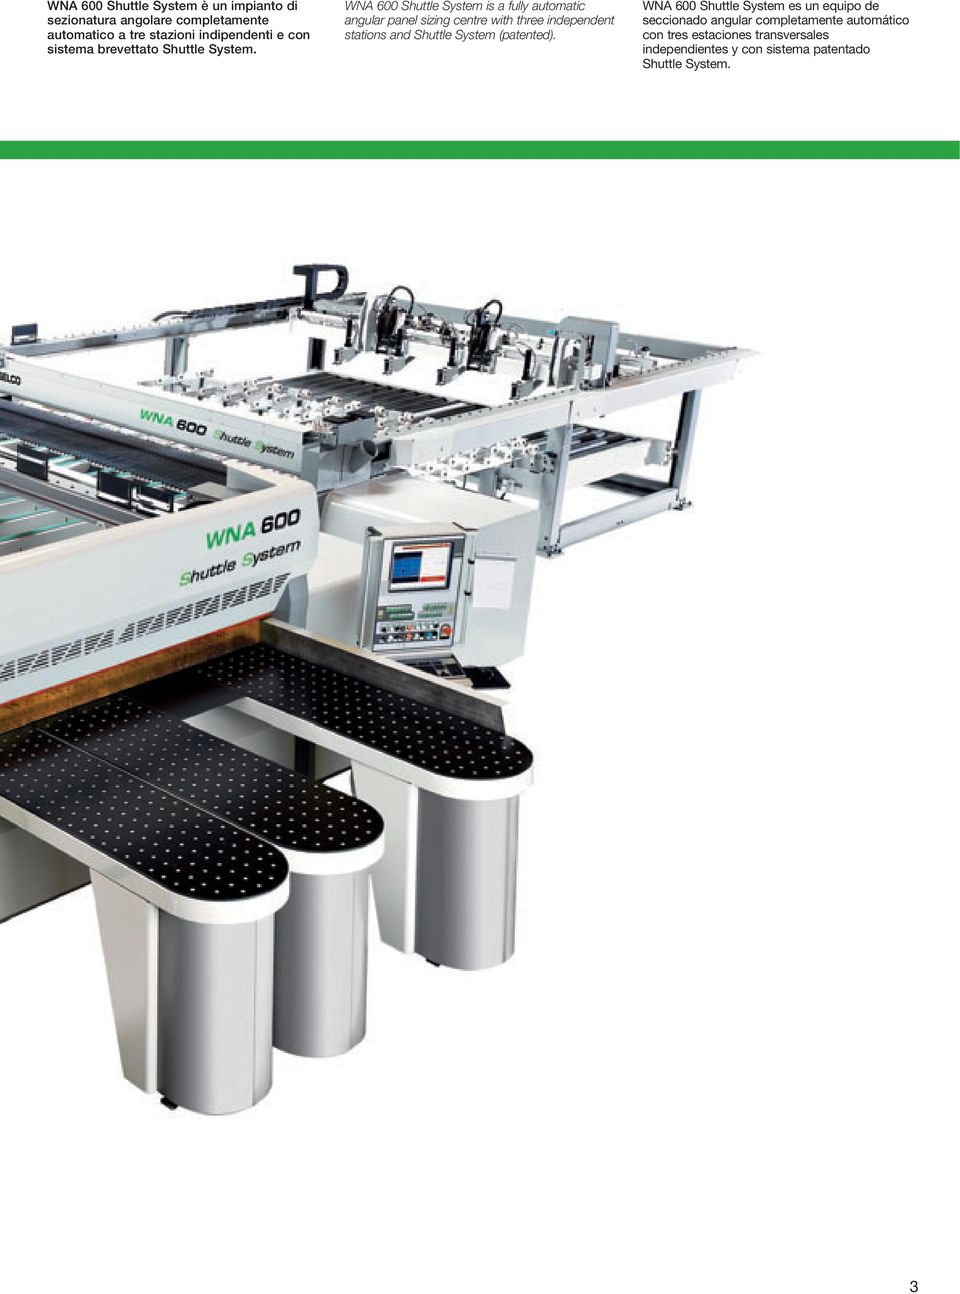 WNA 600 Shuttle System is a fully automatic angular panel sizing centre with three independent stations and Shuttle